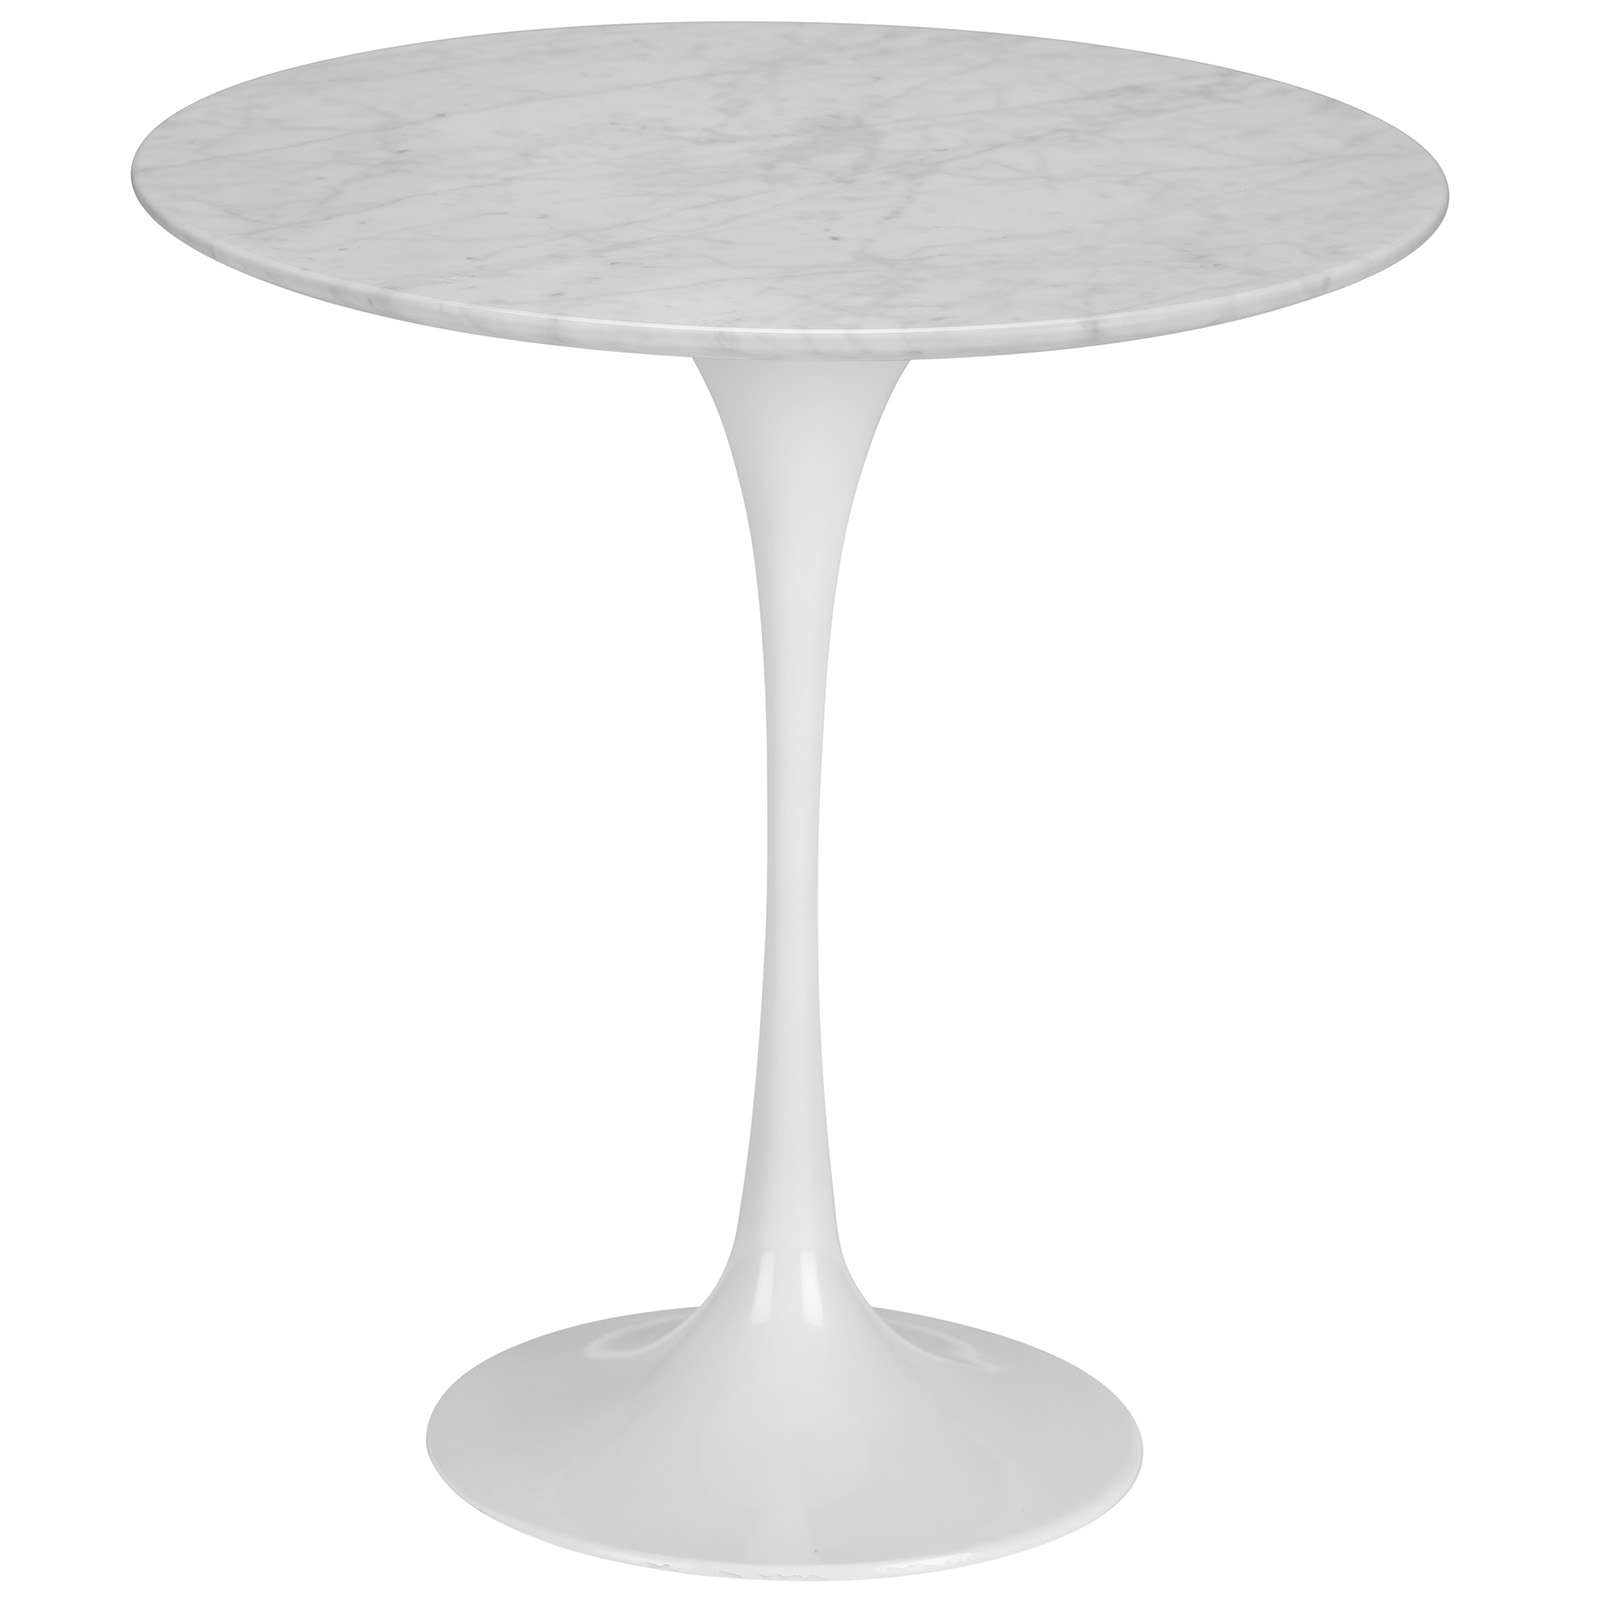 "Daisy 20"" Marble Side Table in White Base"